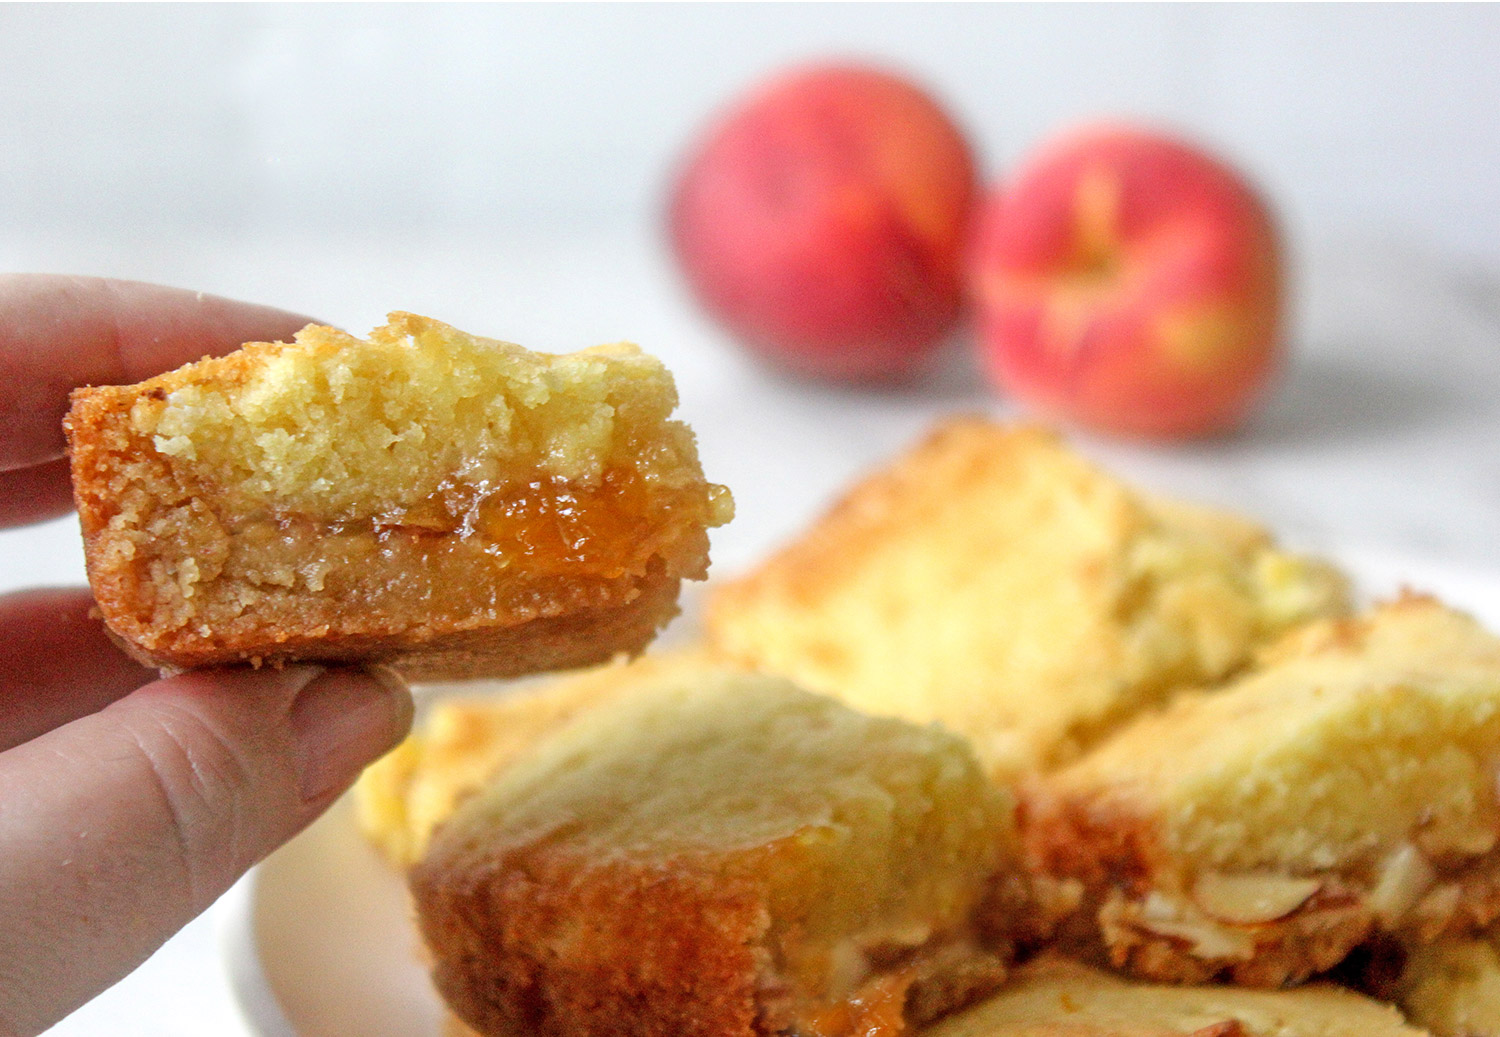 Peach Cobbler Jam Bars Recipe on Plate with Peaches